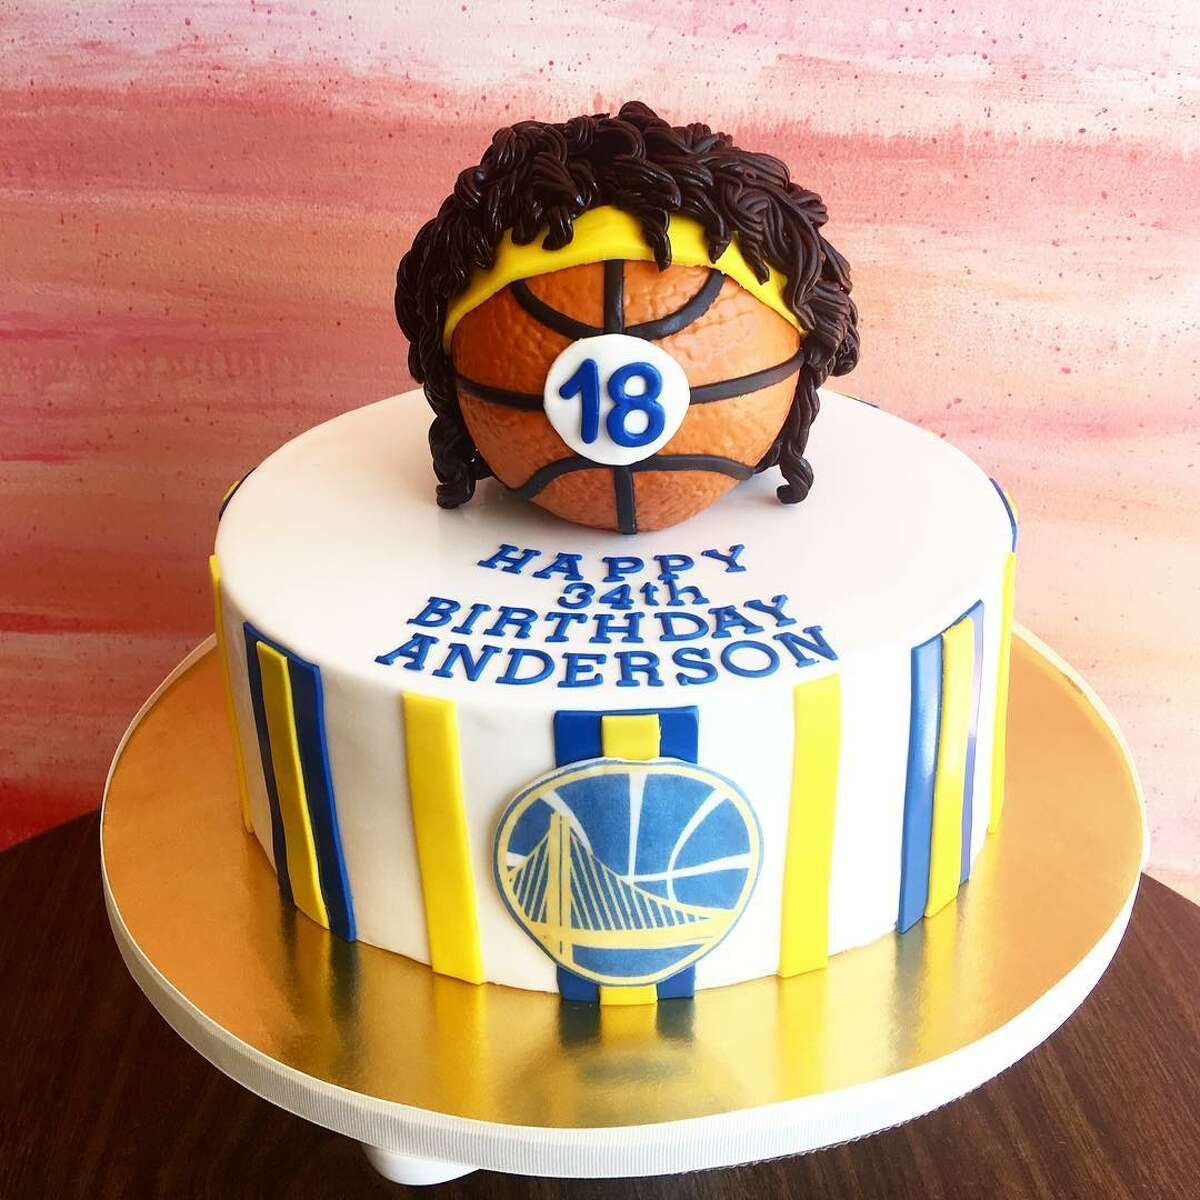 Anderson Varejao's birthday cake, complete with a mini mop of his signature hair.